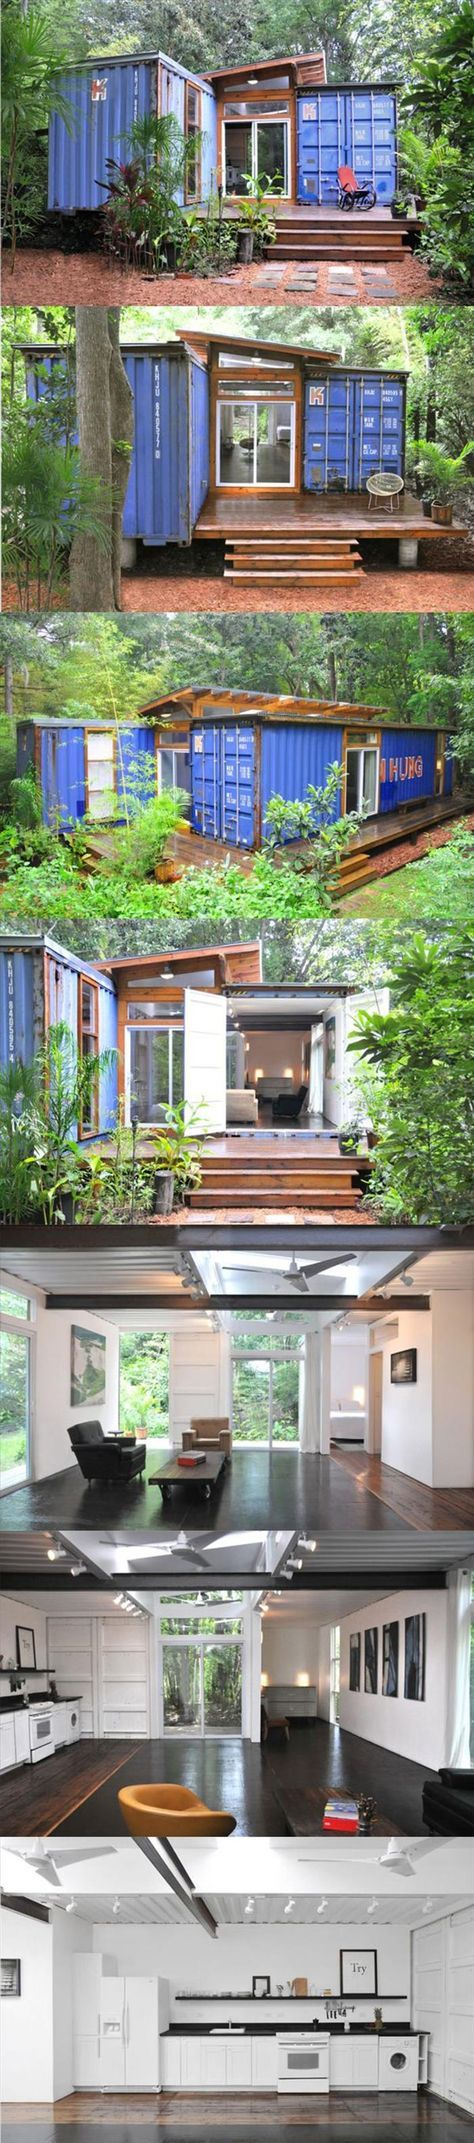 Shipping Container Homes That Will Blow Your Mind – 15 Pics